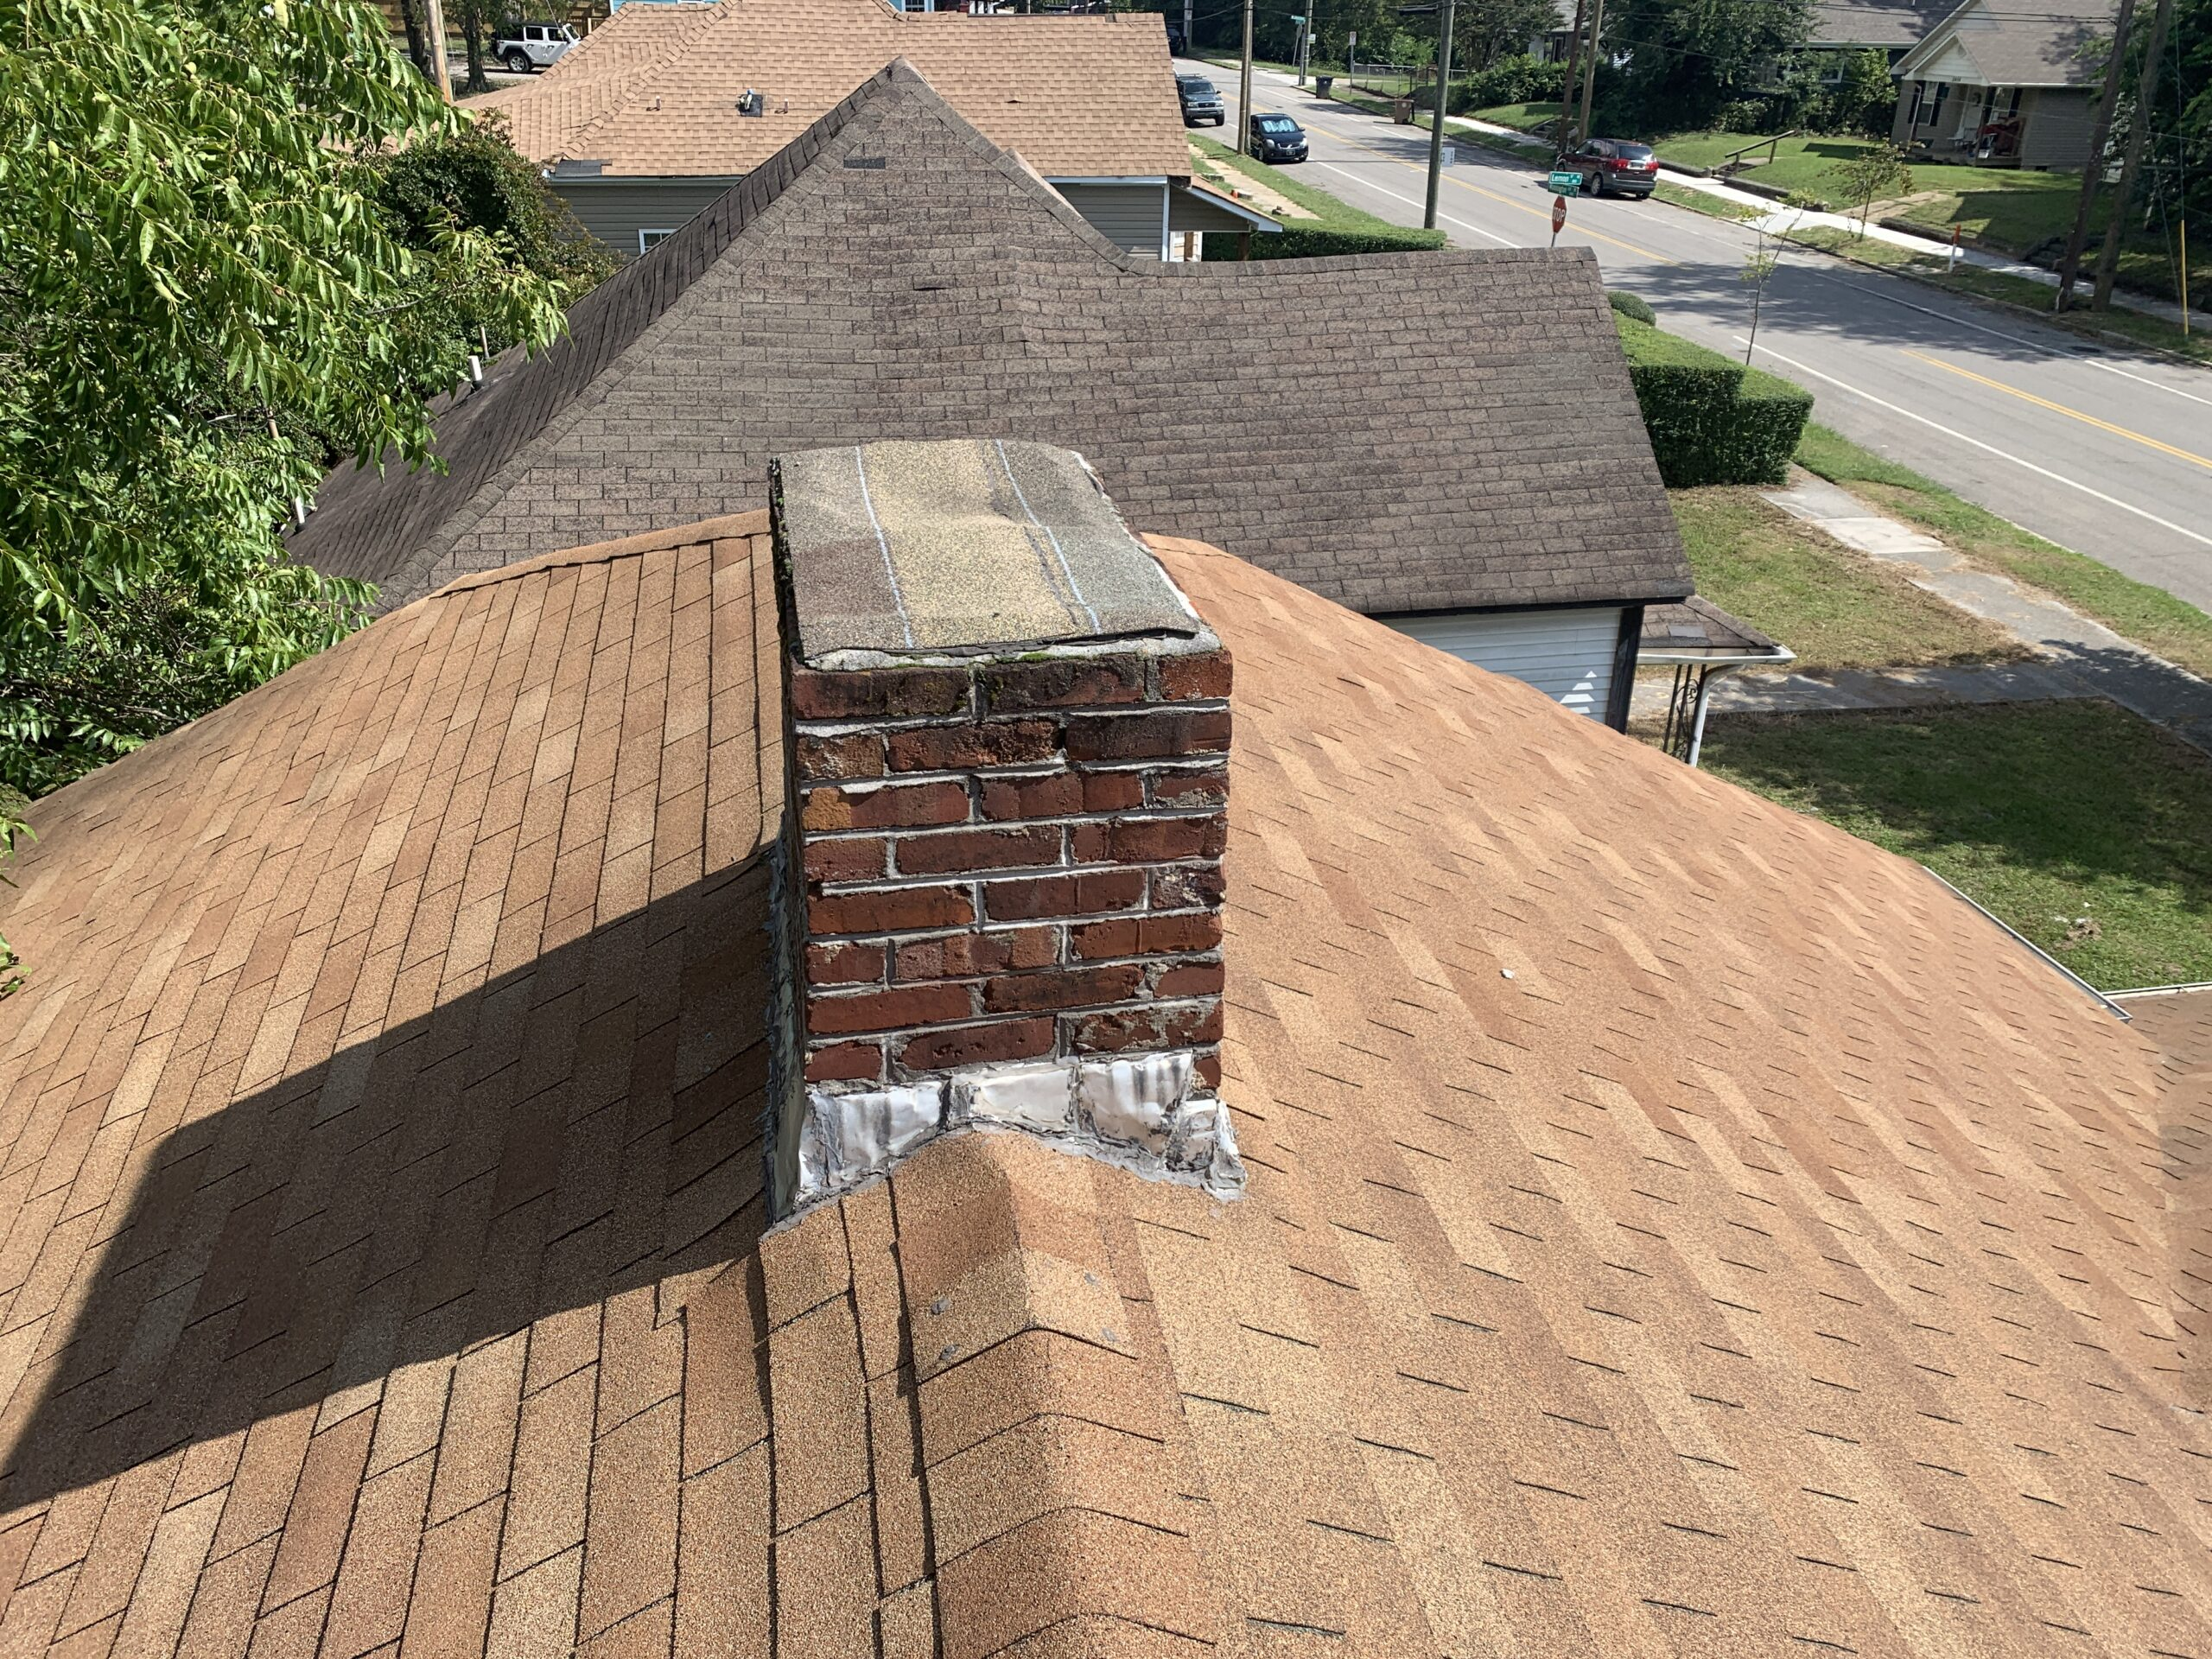 Chimney removal is recommended when the chimney is no longer in use. The less penetrations the better on your roof